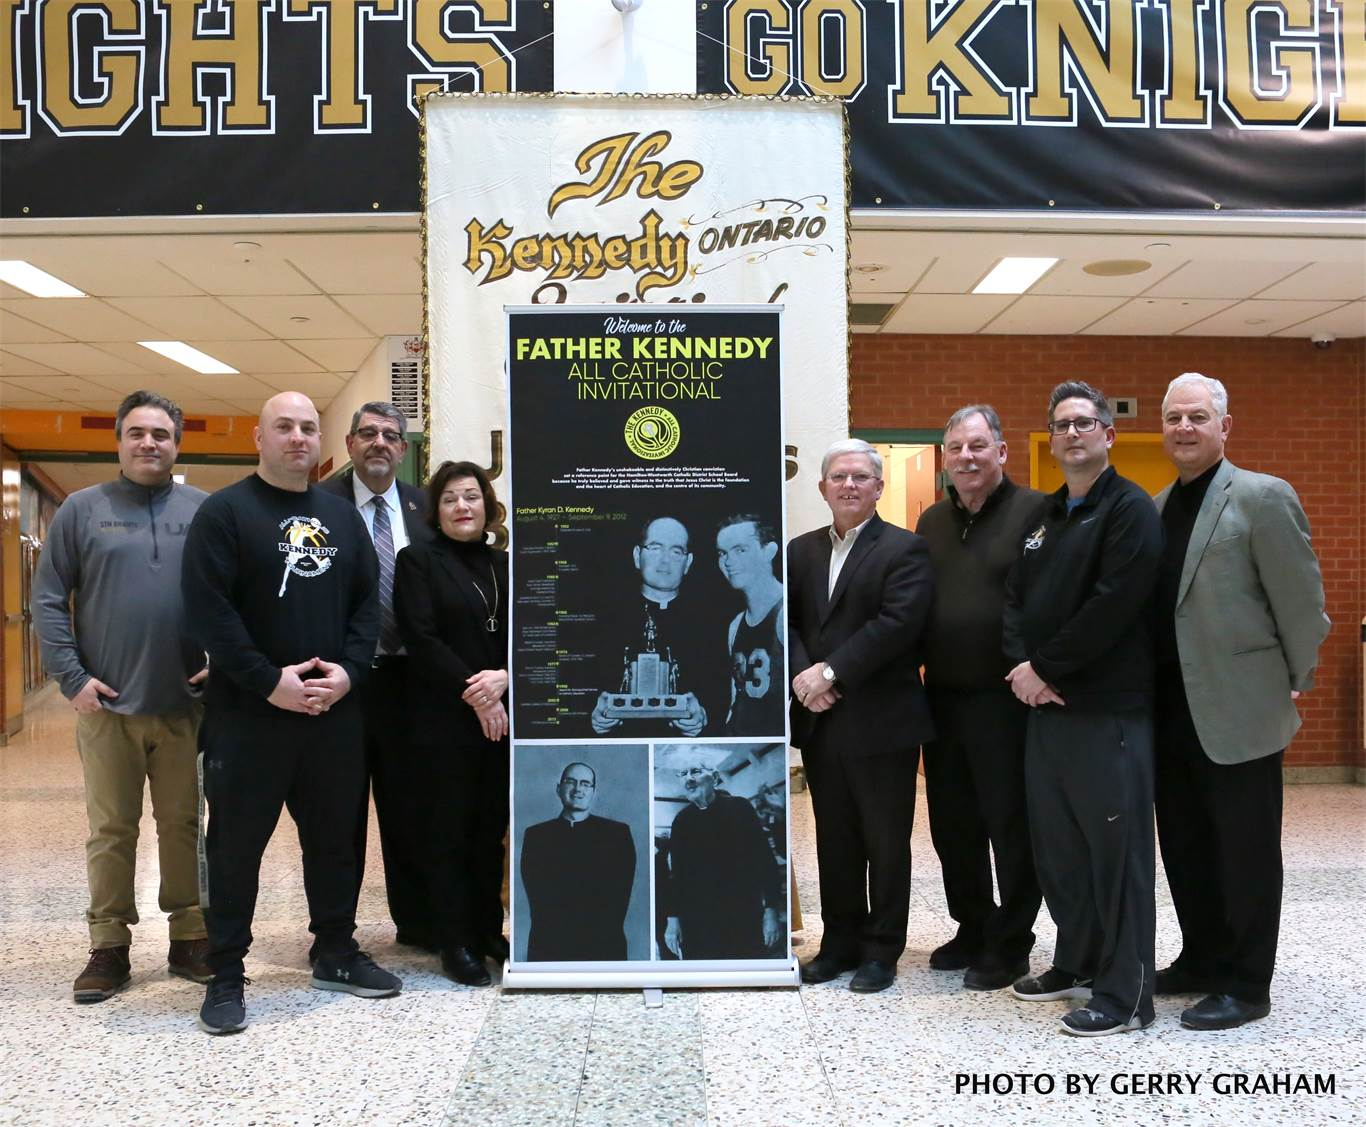 From left to right: Luca Ciardullo, Tournament Convenor and designer of the Fr. Kennedy banner; Stefano Giovannageli, Convenor; Carm Barone, Principal of Bishop Tonnos; Sara Cannon, Principal of St. Thomas More; Patrick Daly, Board Chairperson; John Valvasori, Board Vice-Chairperson and Trustee for St. Thomas More; Chris D'Angela, Convenor; and Corrado Ciapanna, Superintendent for St. Thomas More. Photo by Gerry Graham.